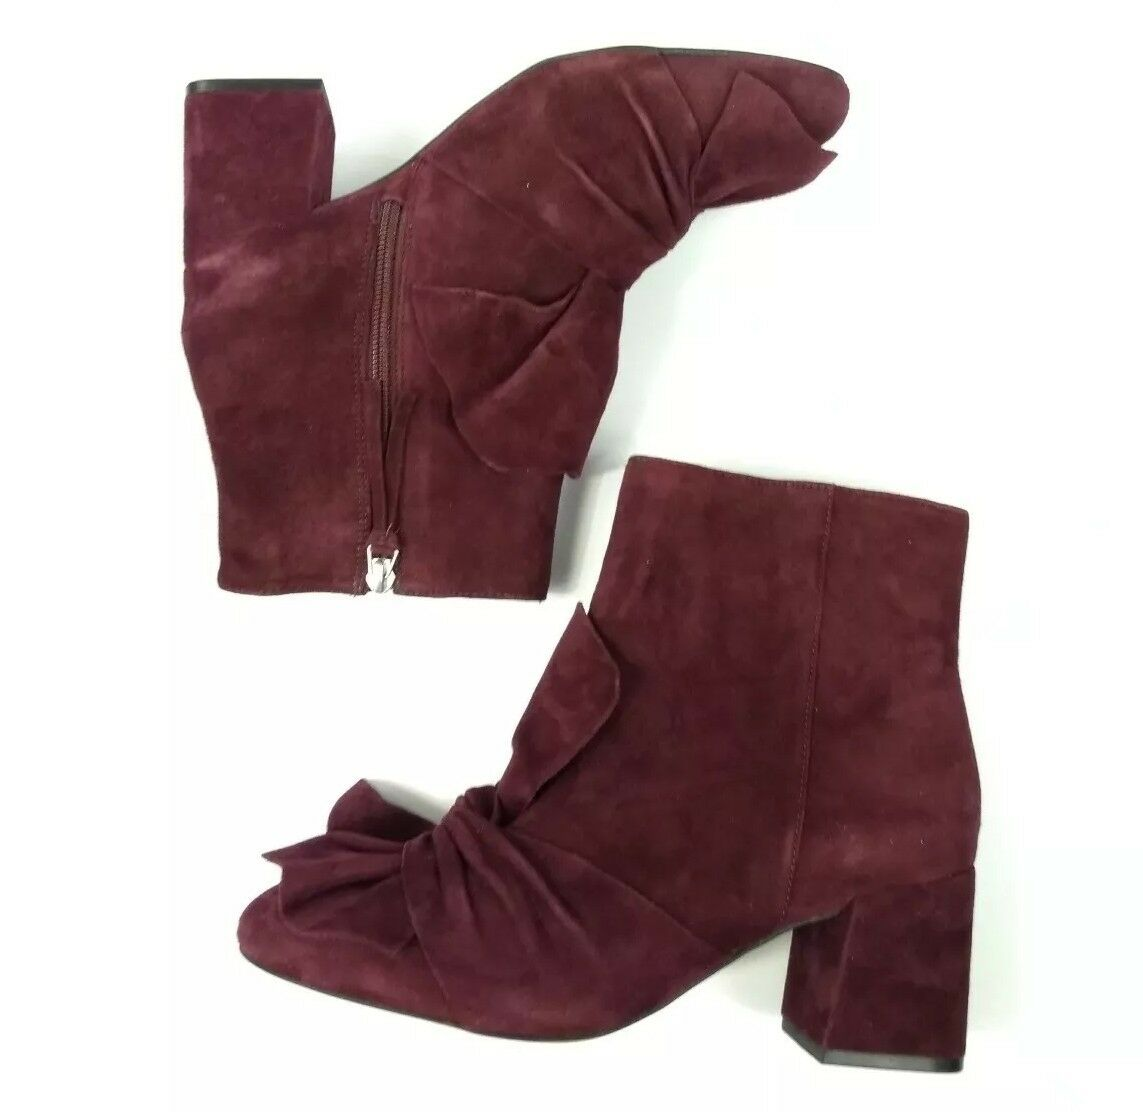 Rebecca Minkoff Lara Booties Bow Red Red Red Burgundy Suede Ankle Boots Size 8.5 New 935570